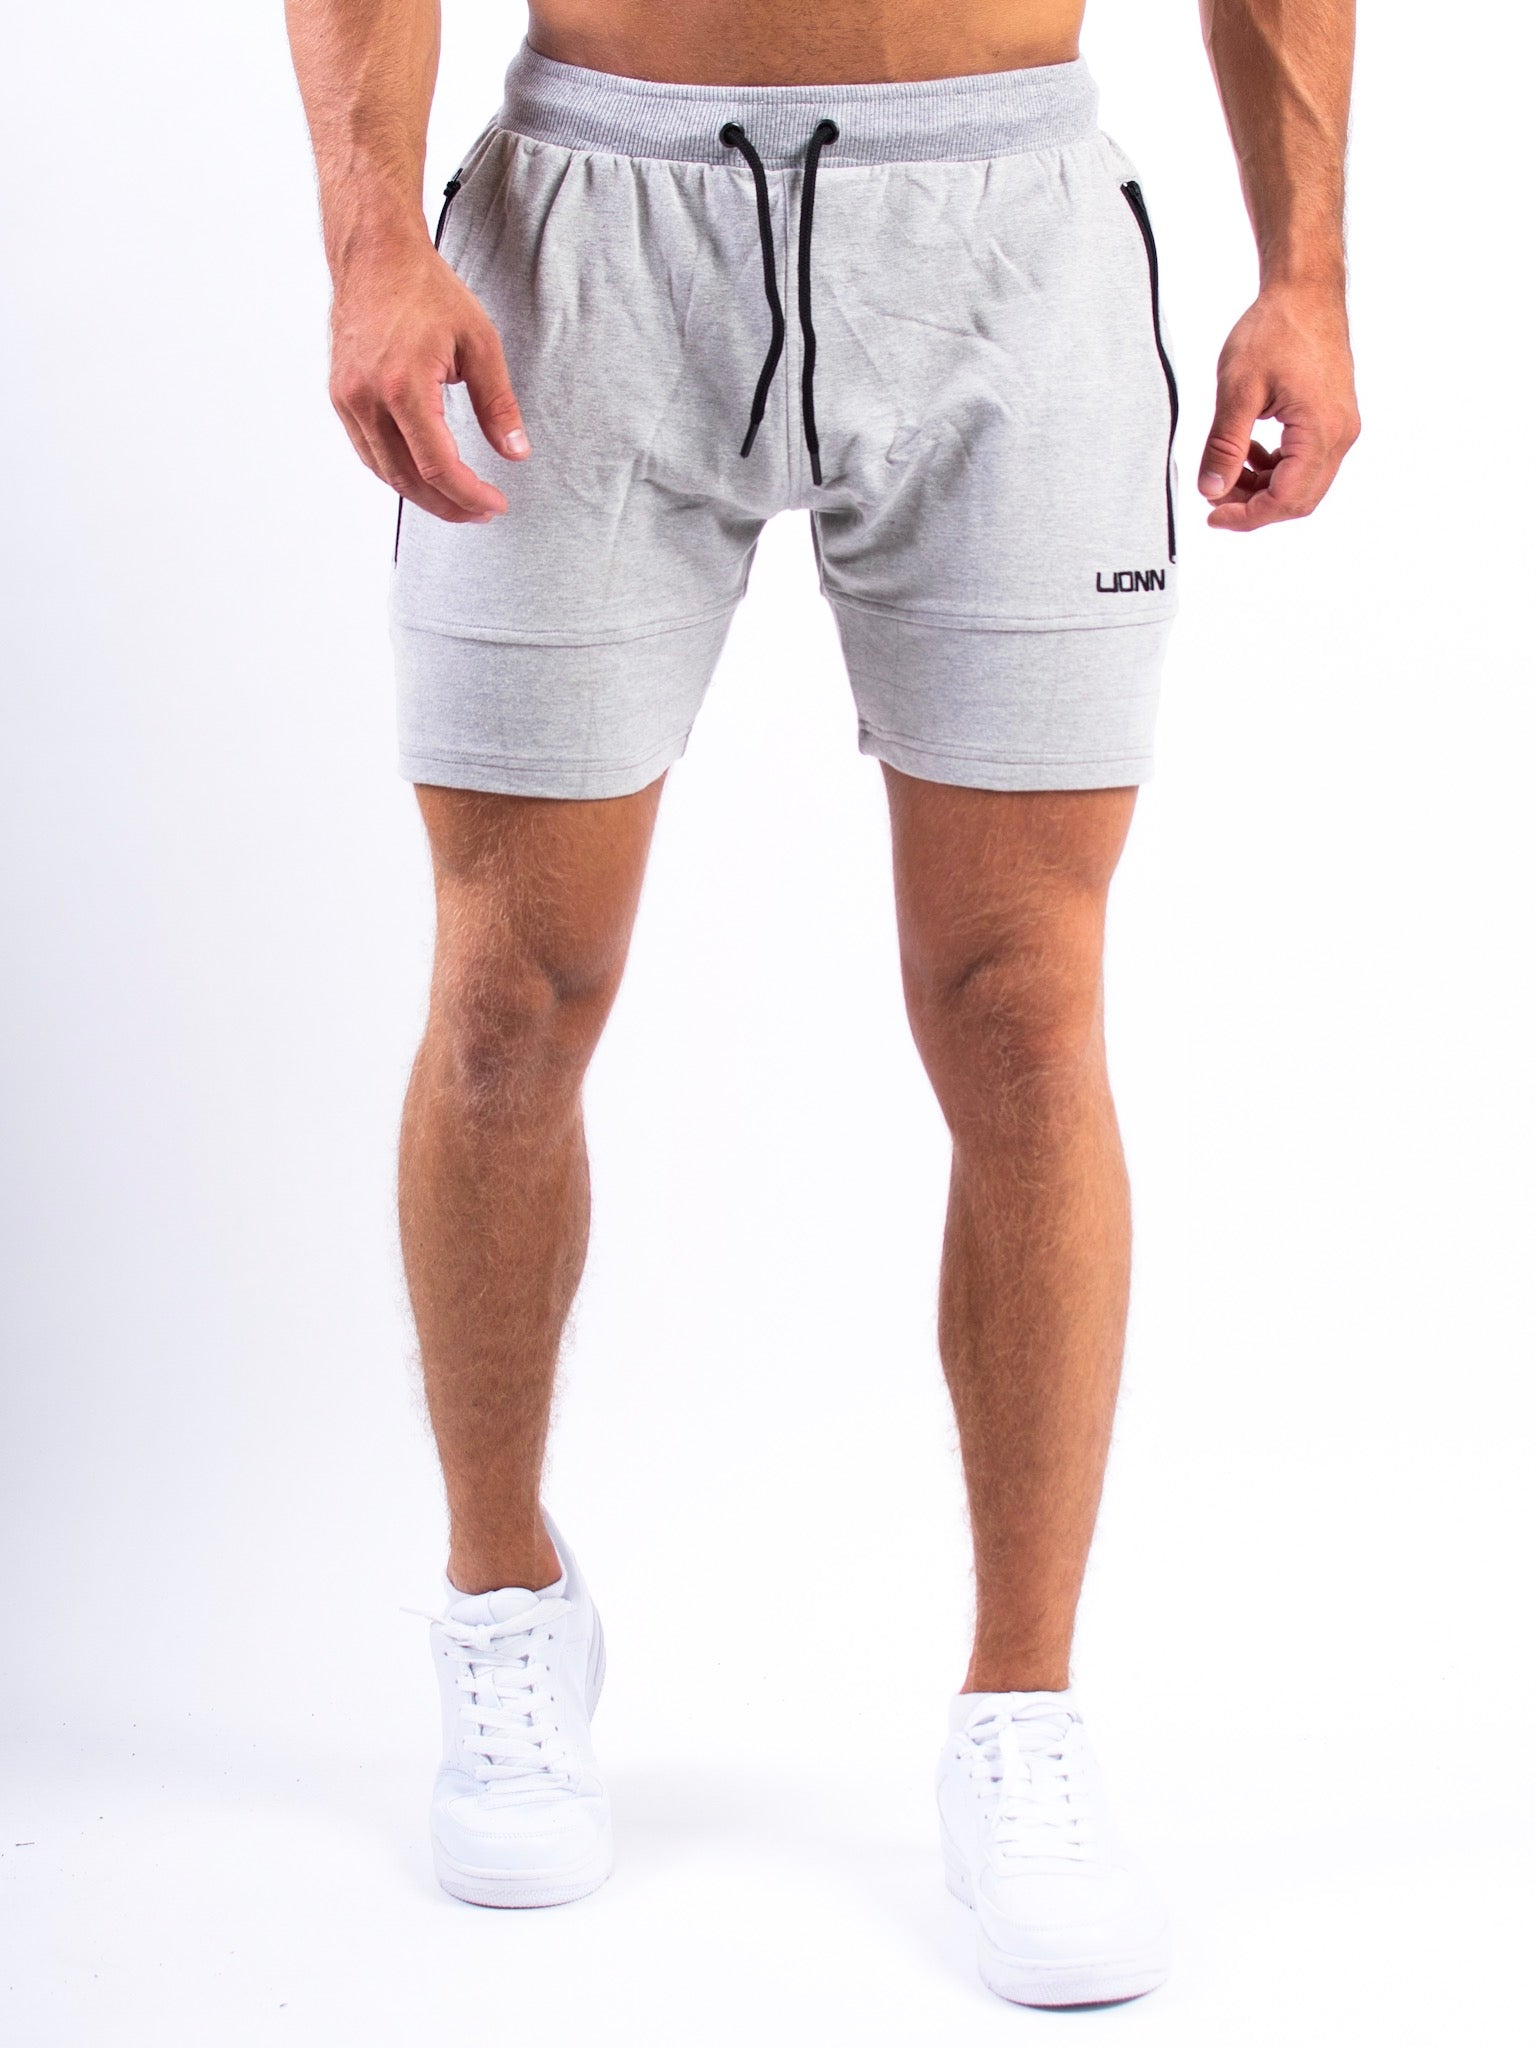 Lionn Fitted Shorts Heather Grey